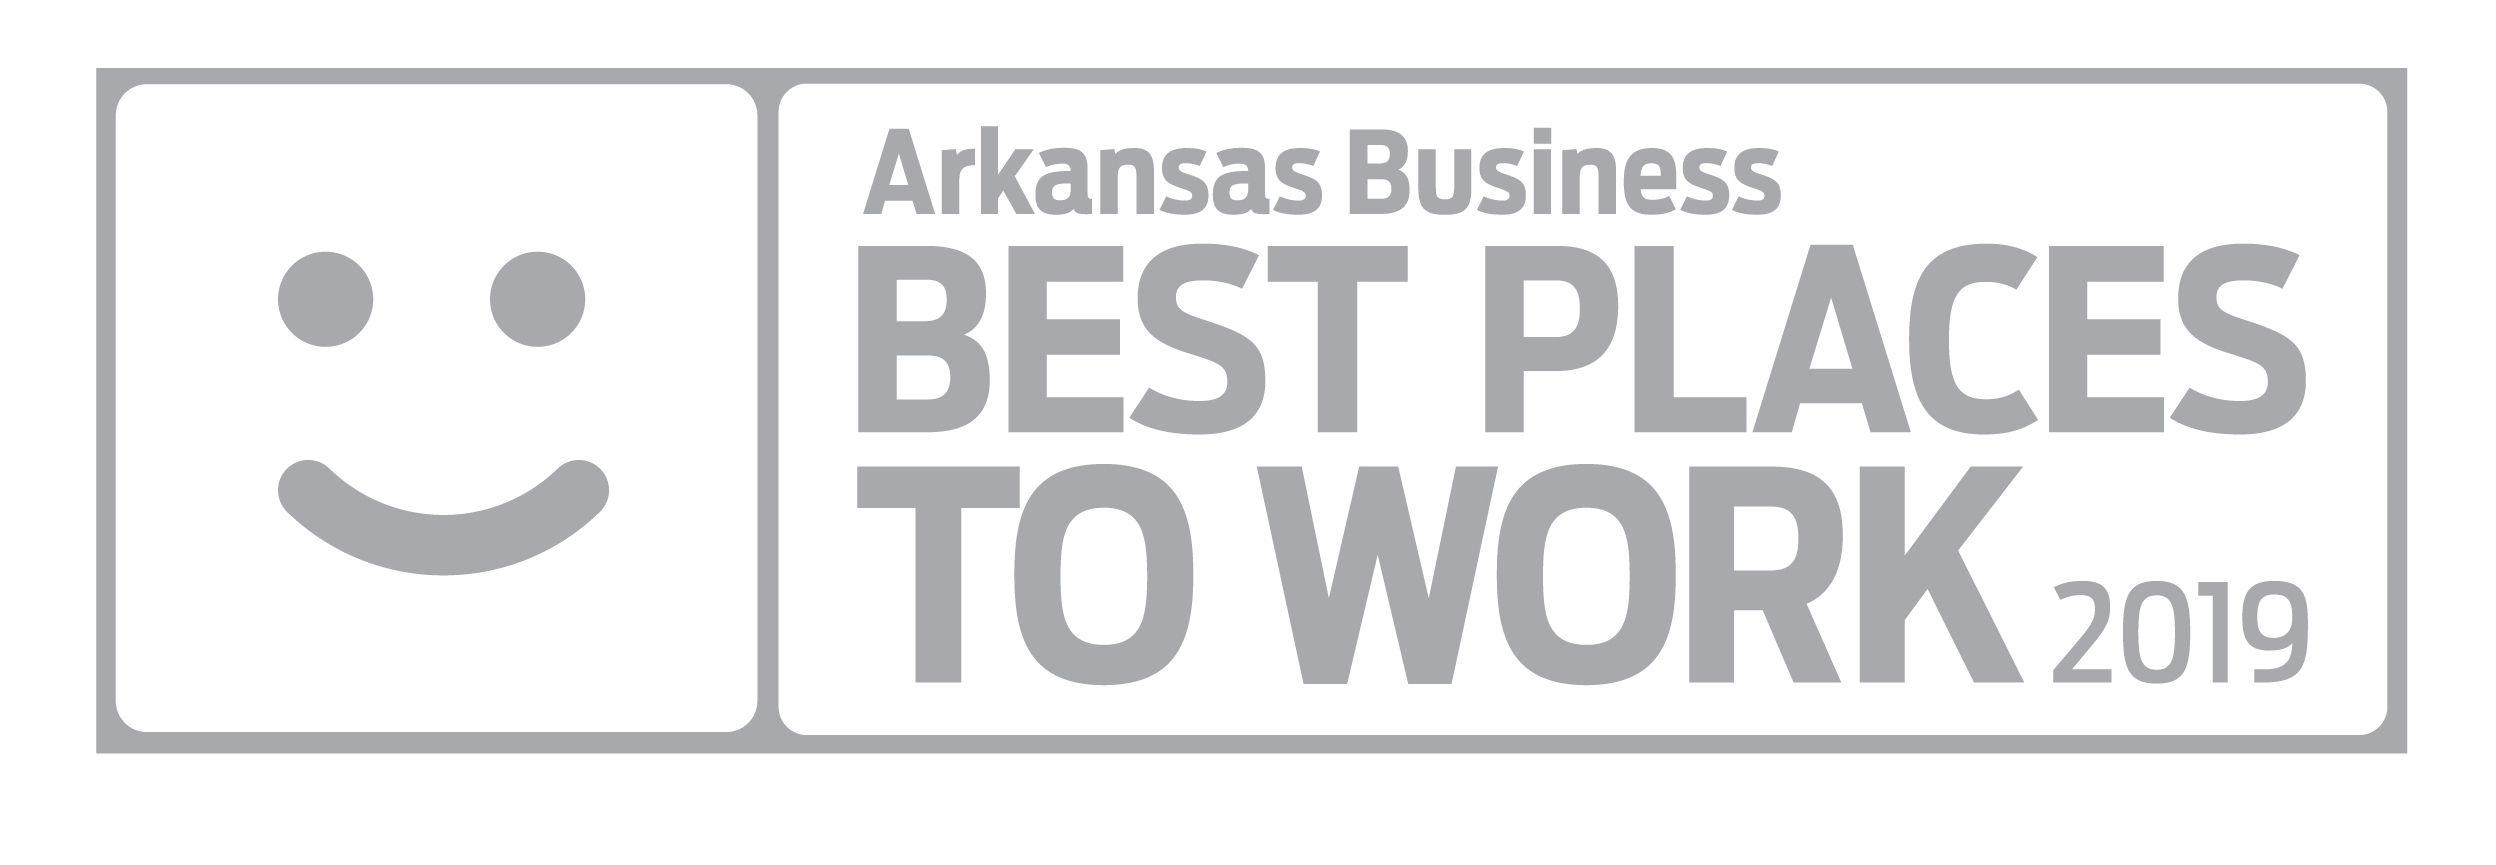 Arkansas Business Best Places to Work logo